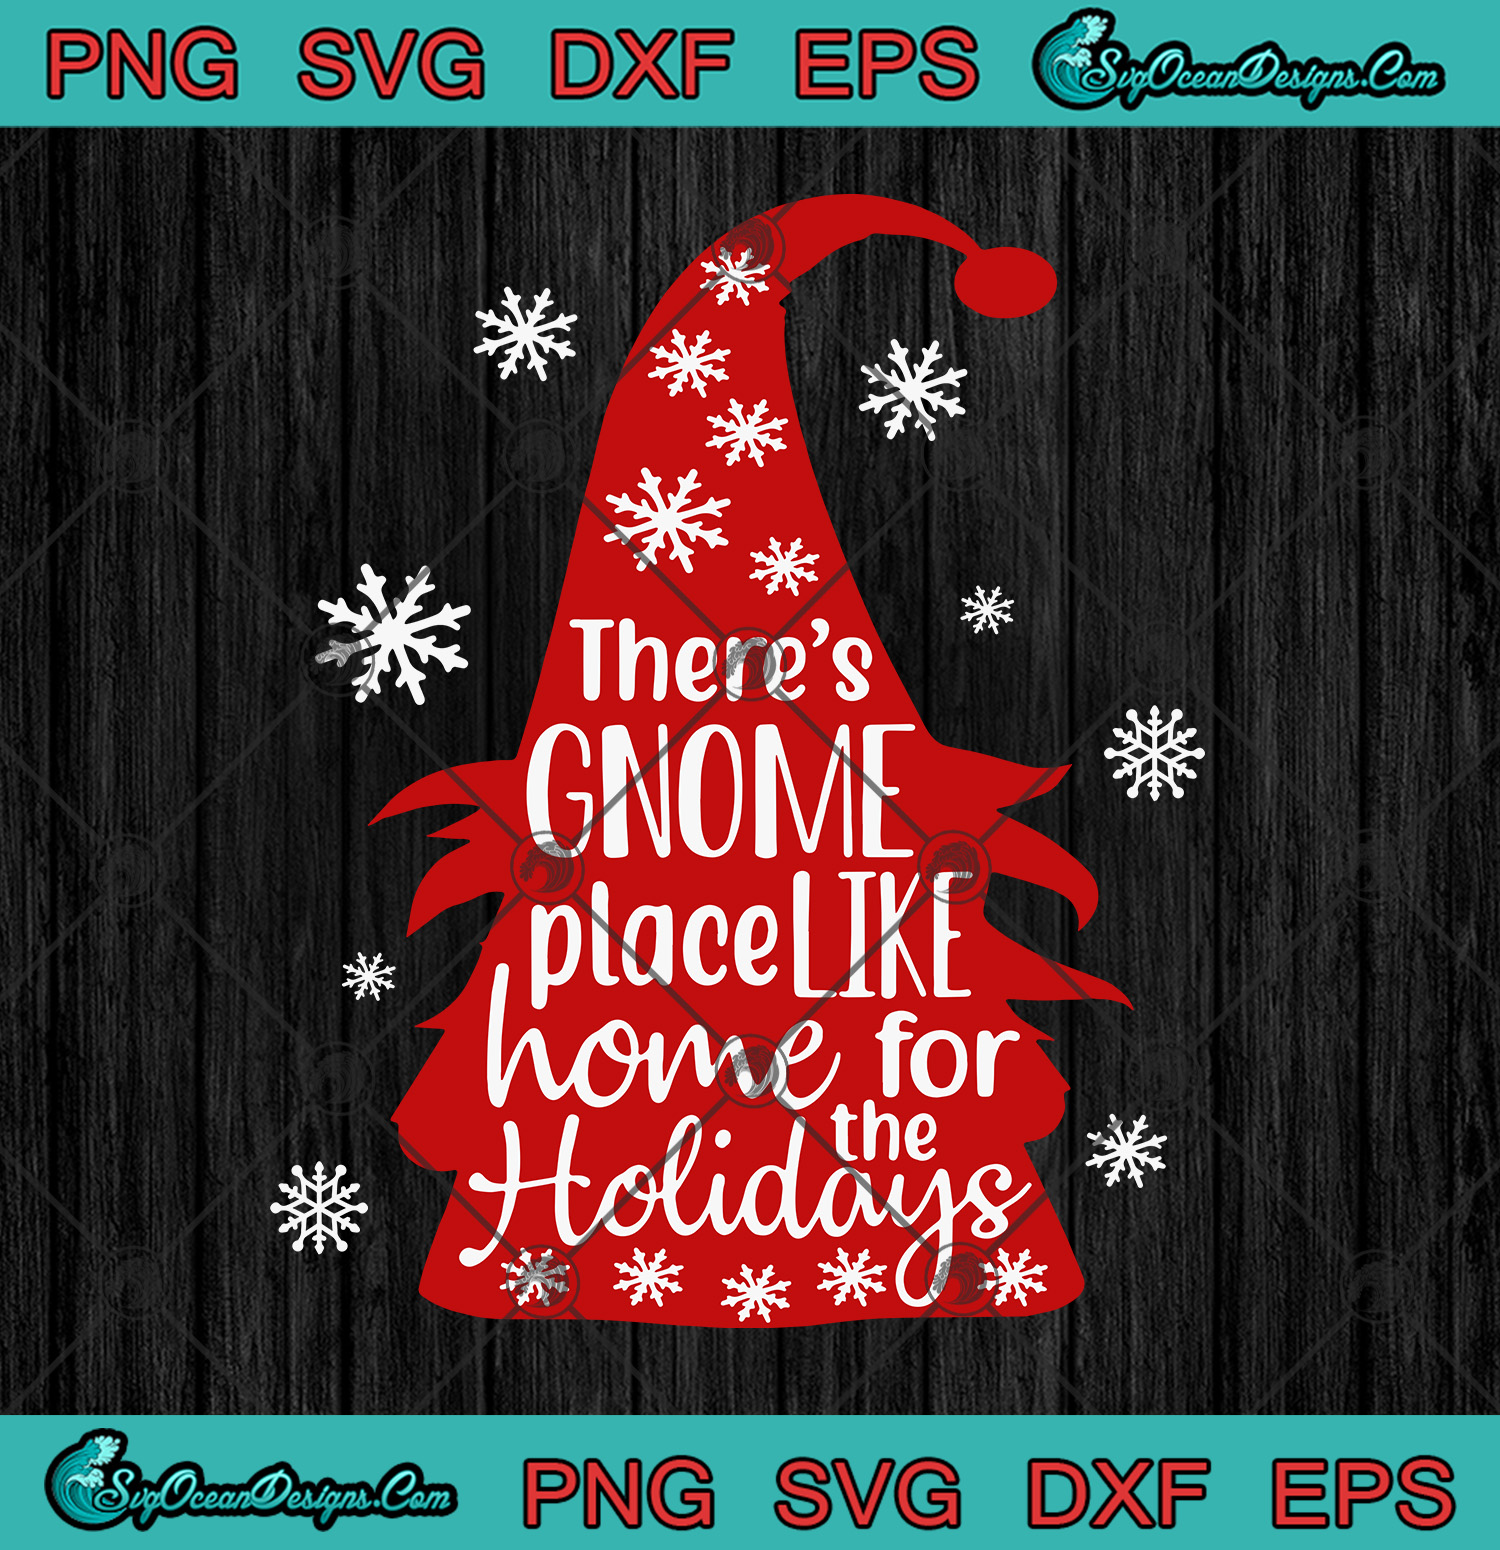 View Coffee And Christmas Music Christmas Svg Files, Holidays Svg Download,Dxf File, Silhouette File,Svg Files For Cricut, Cricut Files Svg PNG